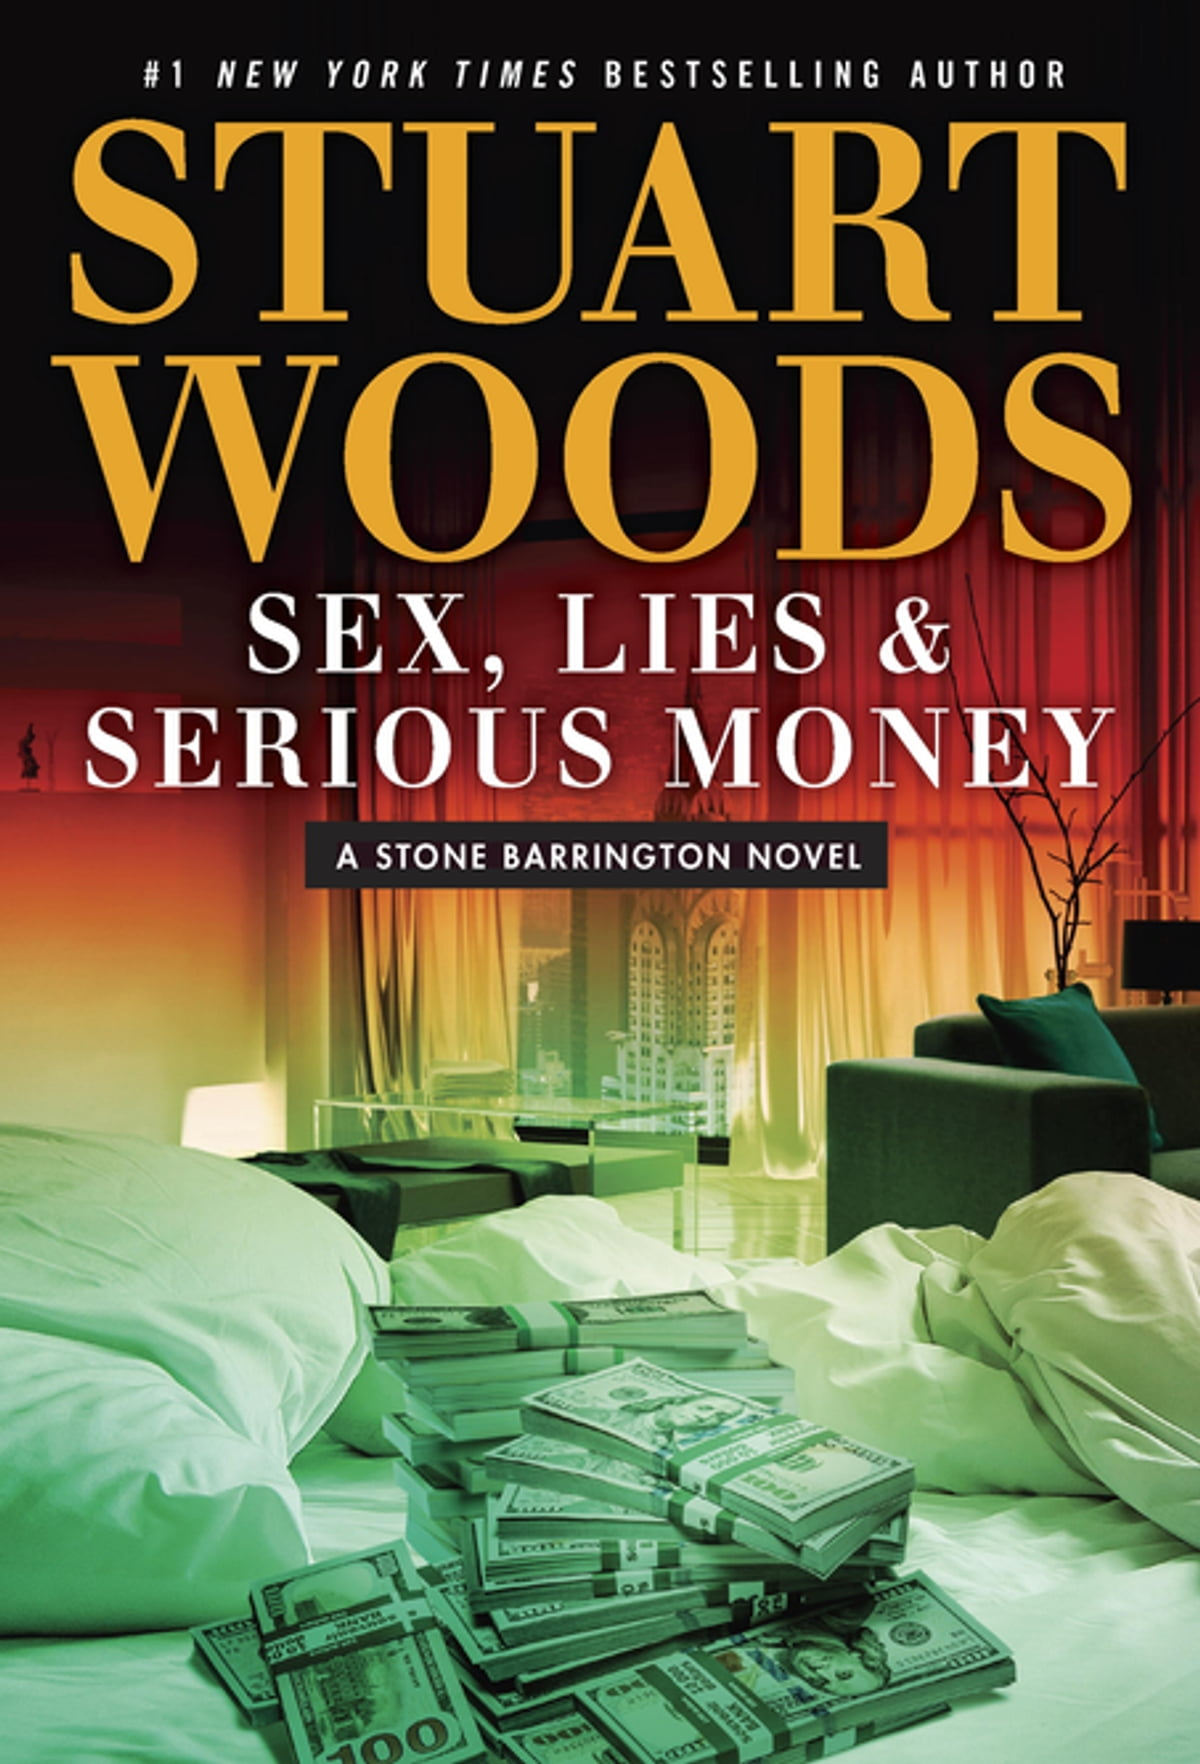 Sex, Lies & Serious Money Ebook By Stuart Woods